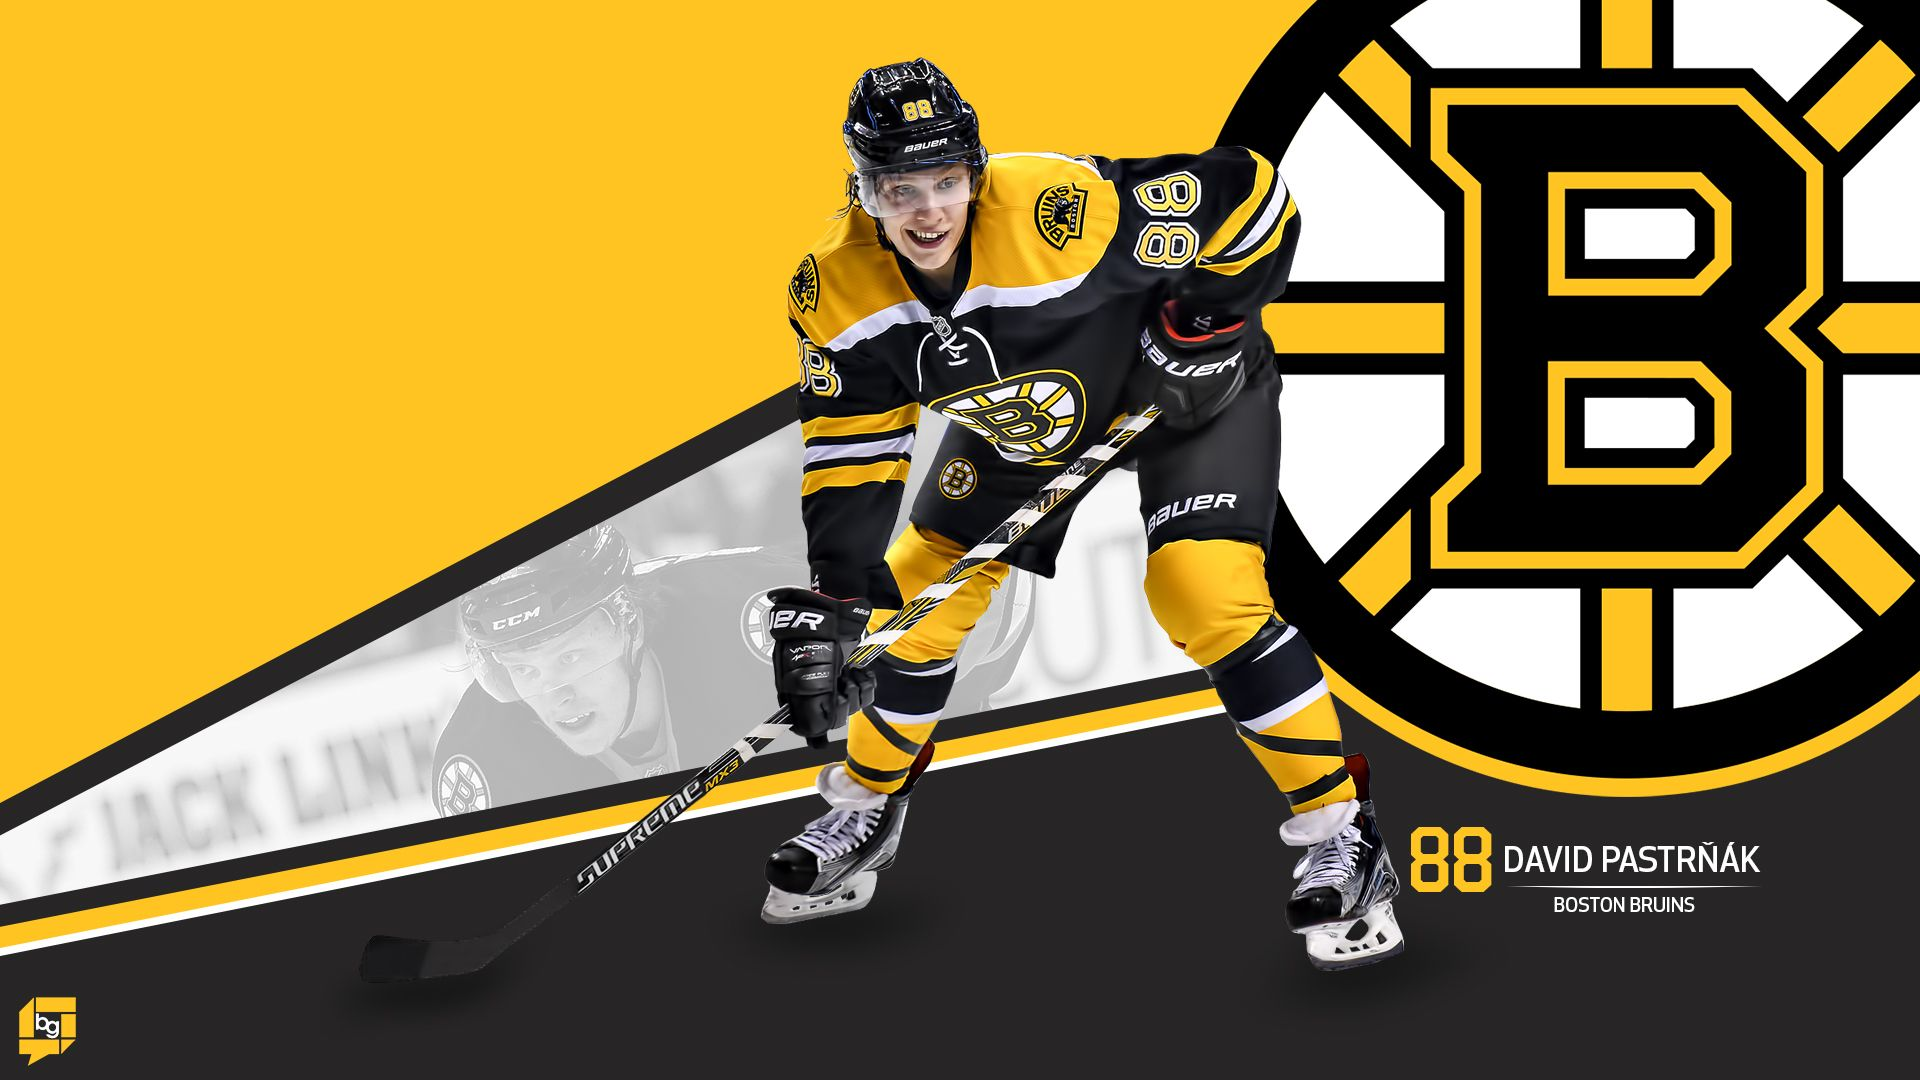 Boston Bruins Wallpaper Free Download Boston Bruins Wallpaper Boston Bruins Boston Bruins Logo